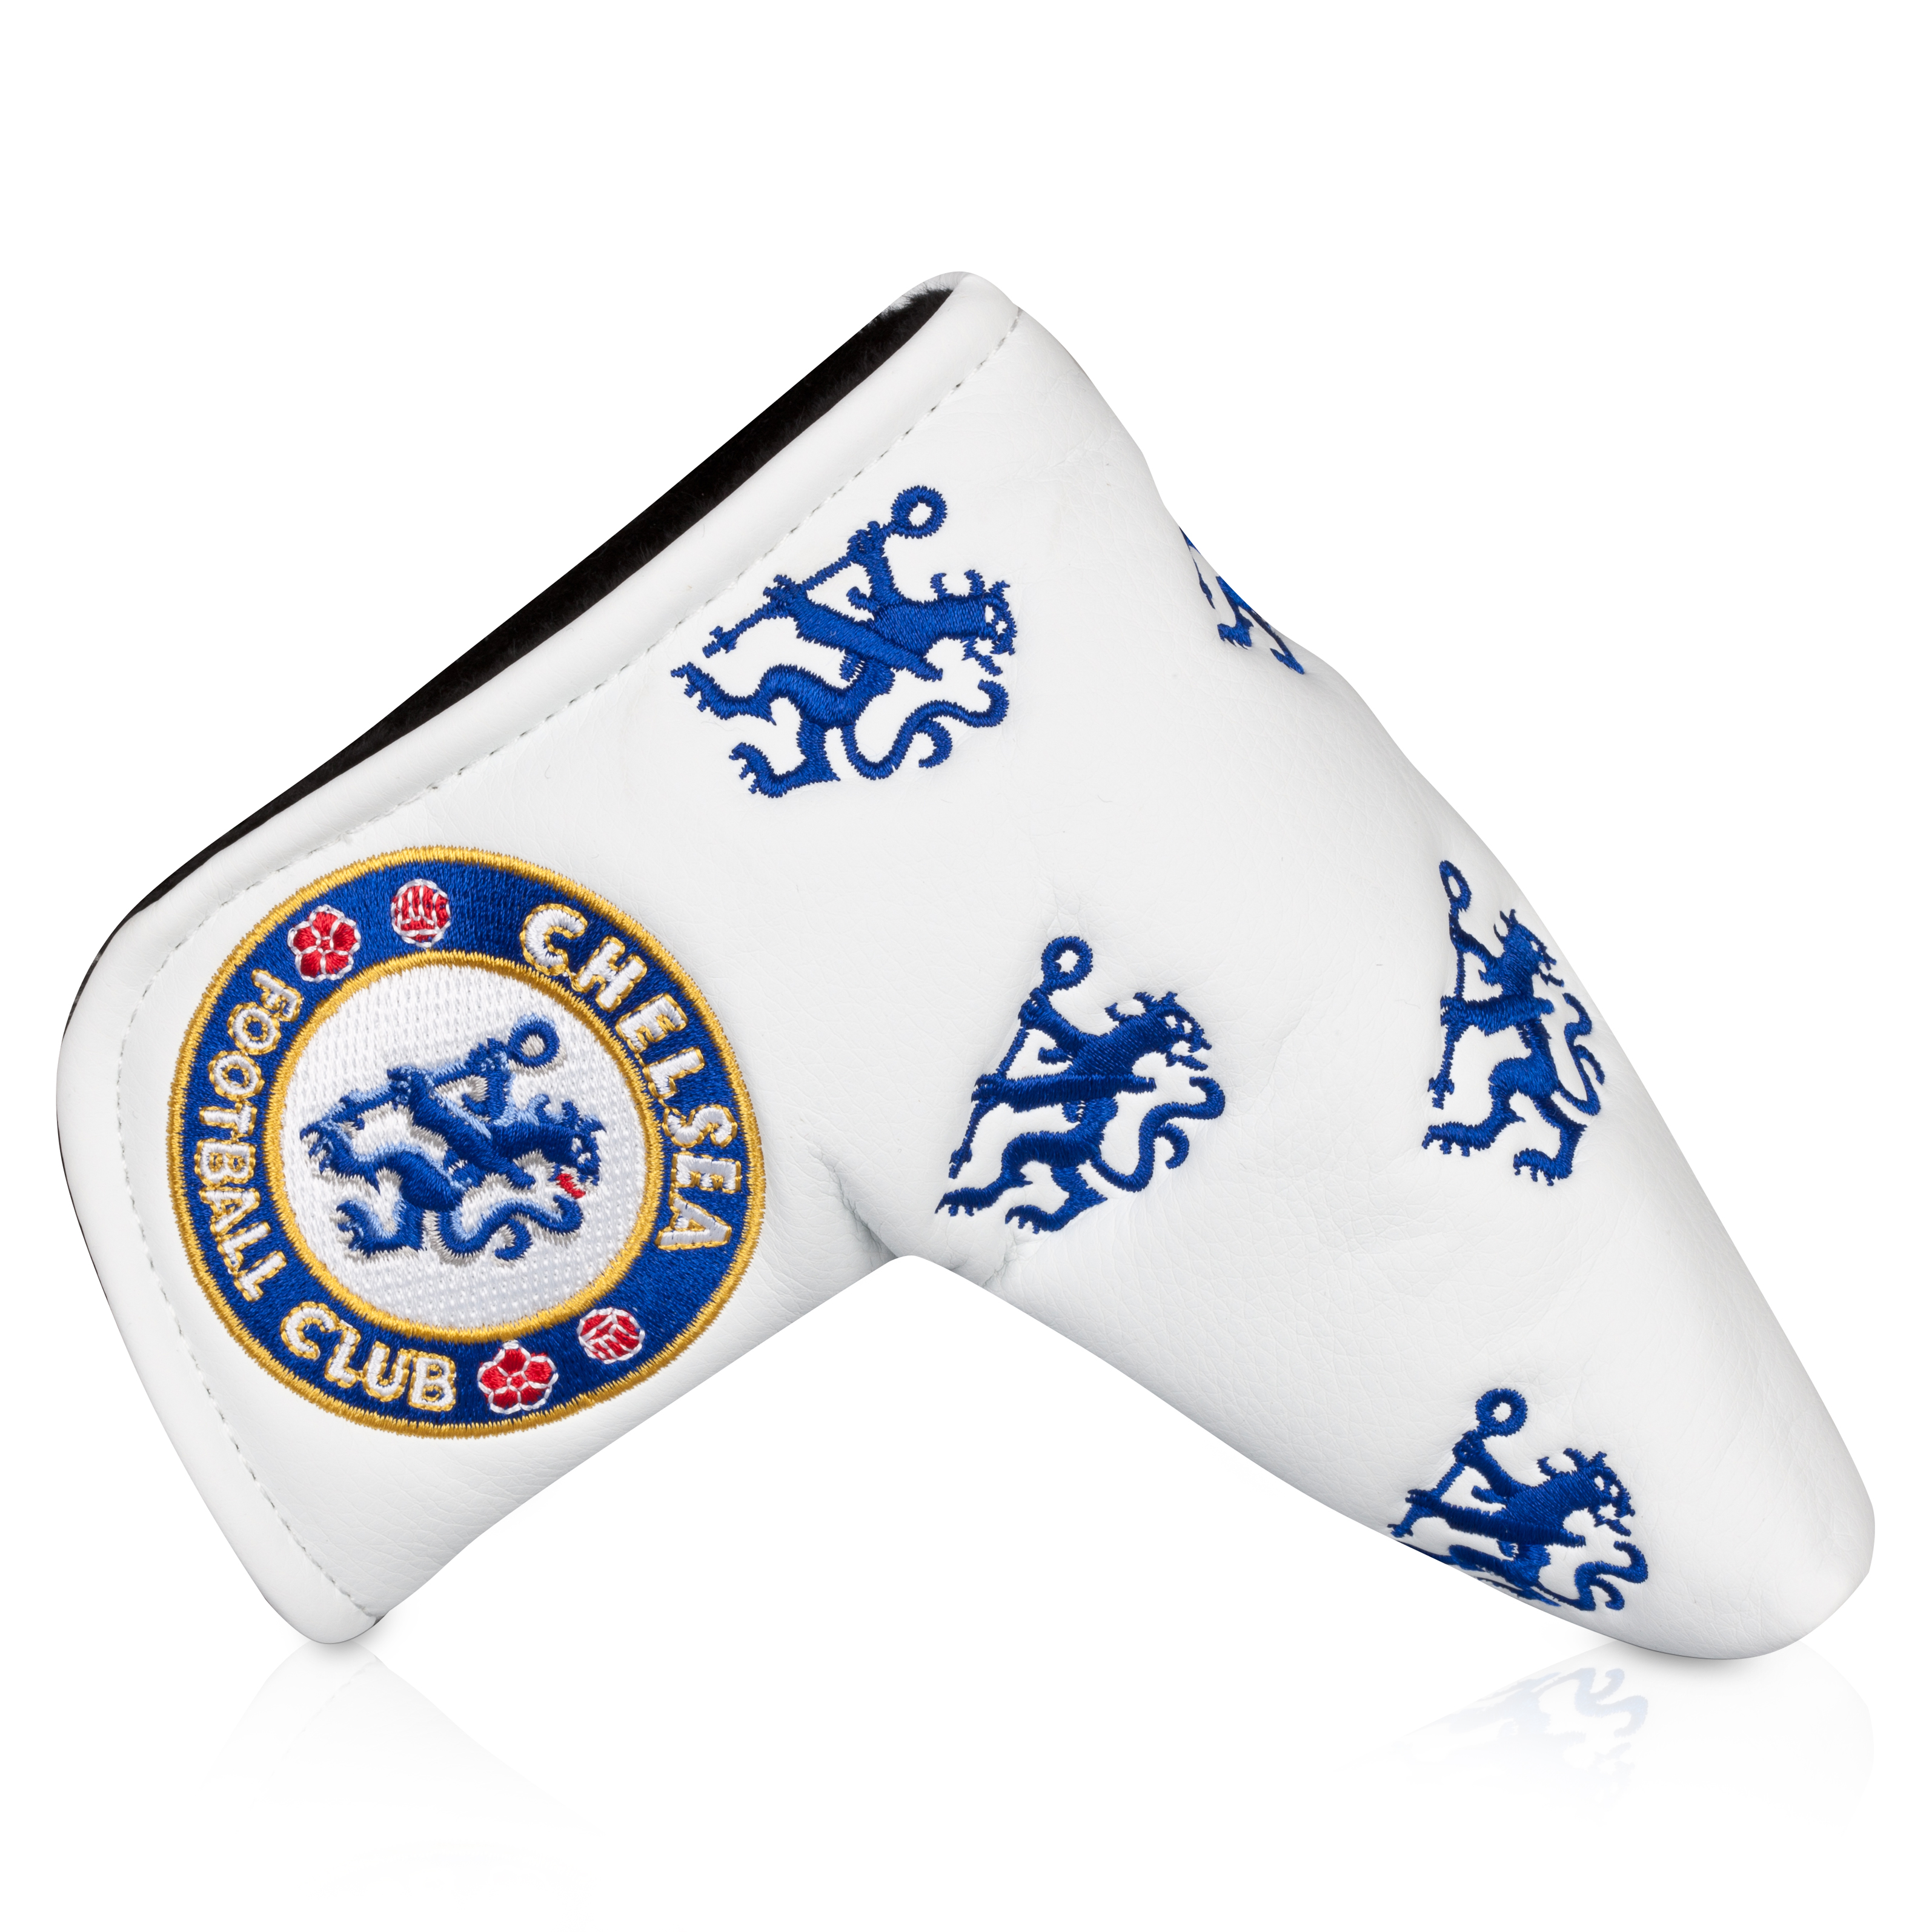 Chelsea Blade Putter Cover